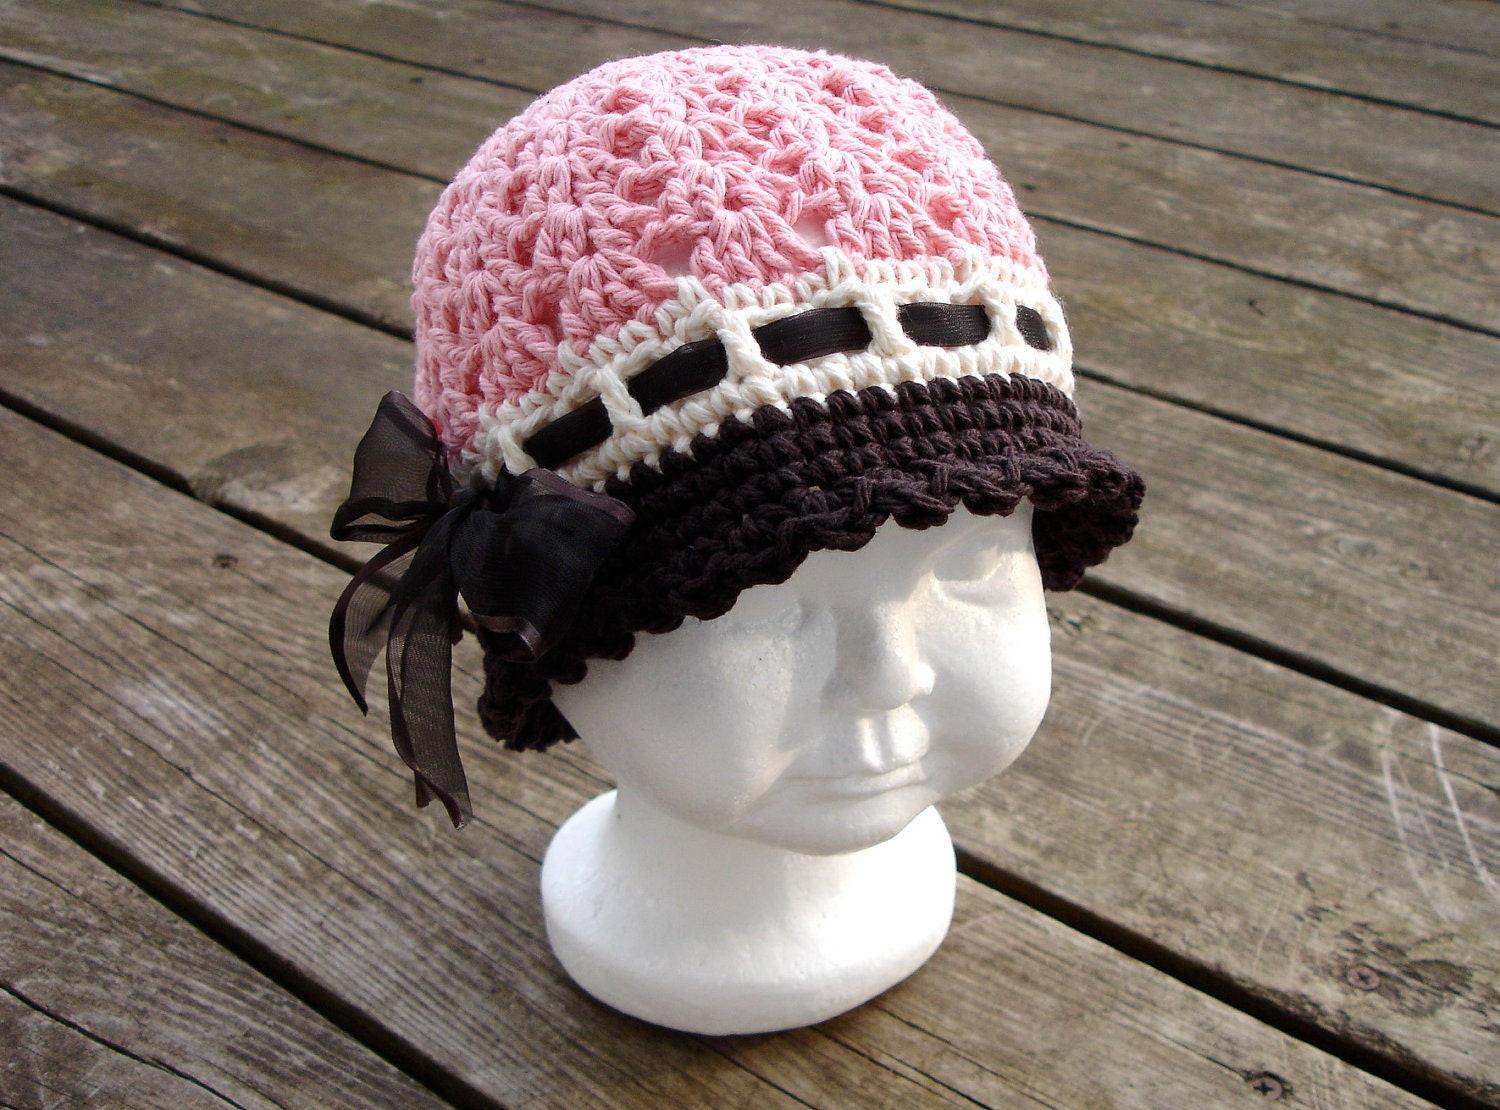 Crochet pattern for katrina cloche hat 5 sizes baby to adult this is a digital file dt1010fo